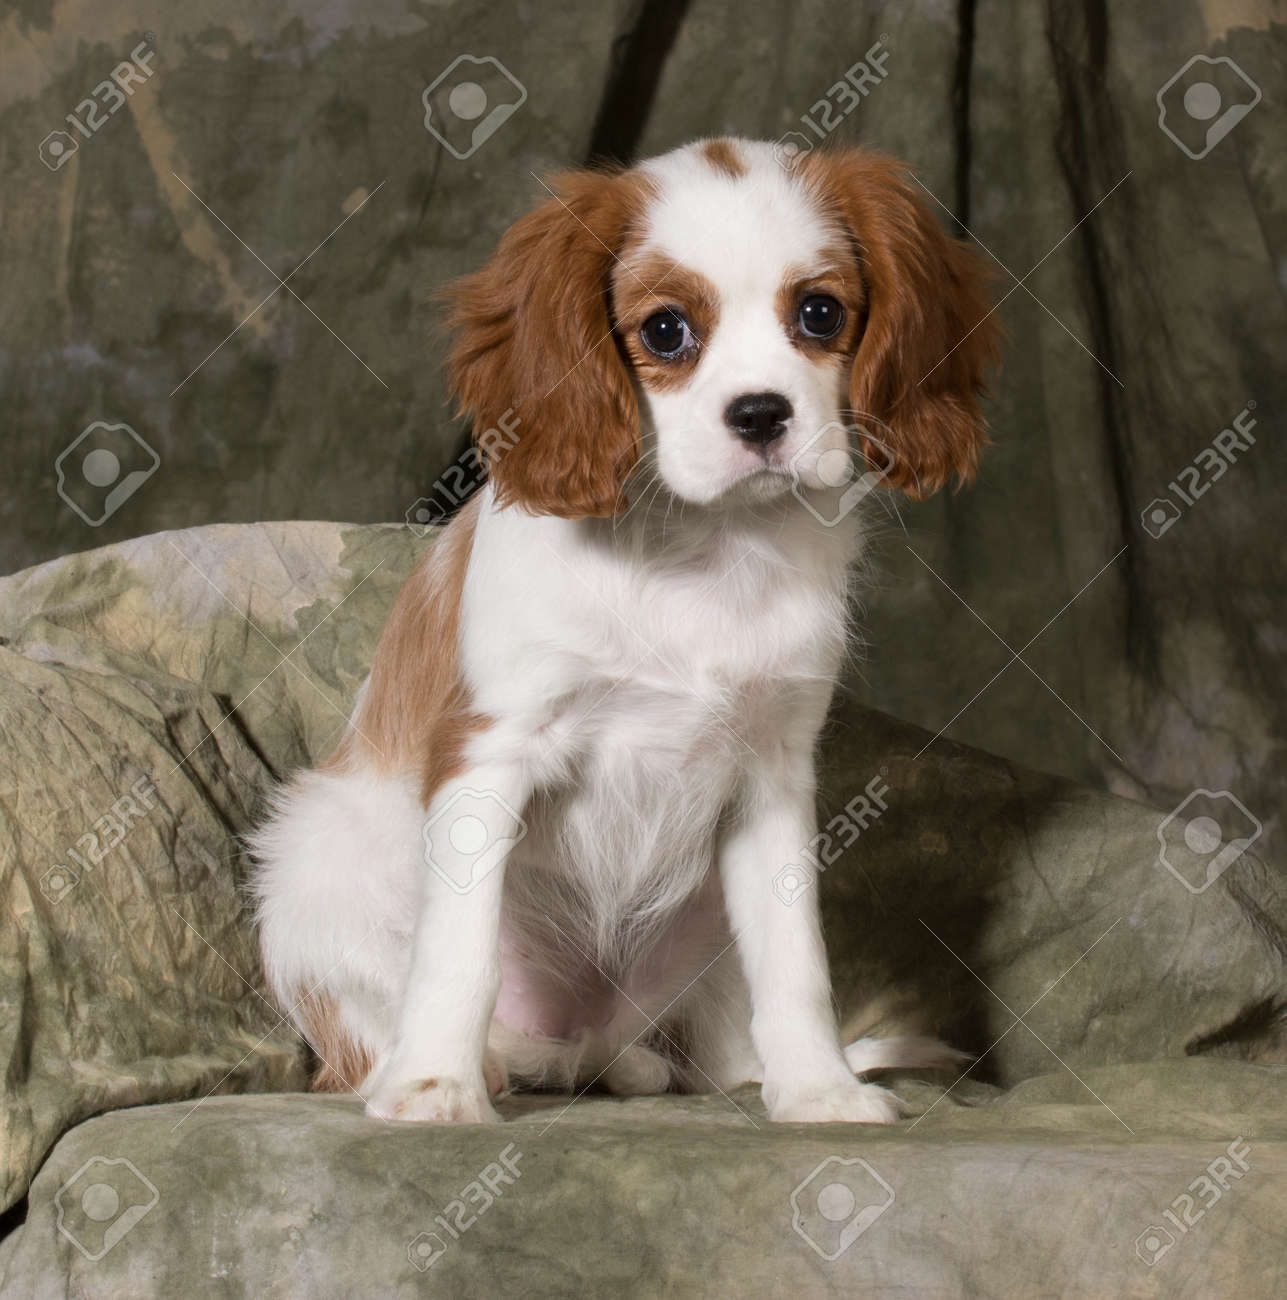 Cavalier king charles spaniel puppy blenheim 3 months old stock cavalier king charles spaniel puppy blenheim 3 months old stock photo 26724320 altavistaventures Images